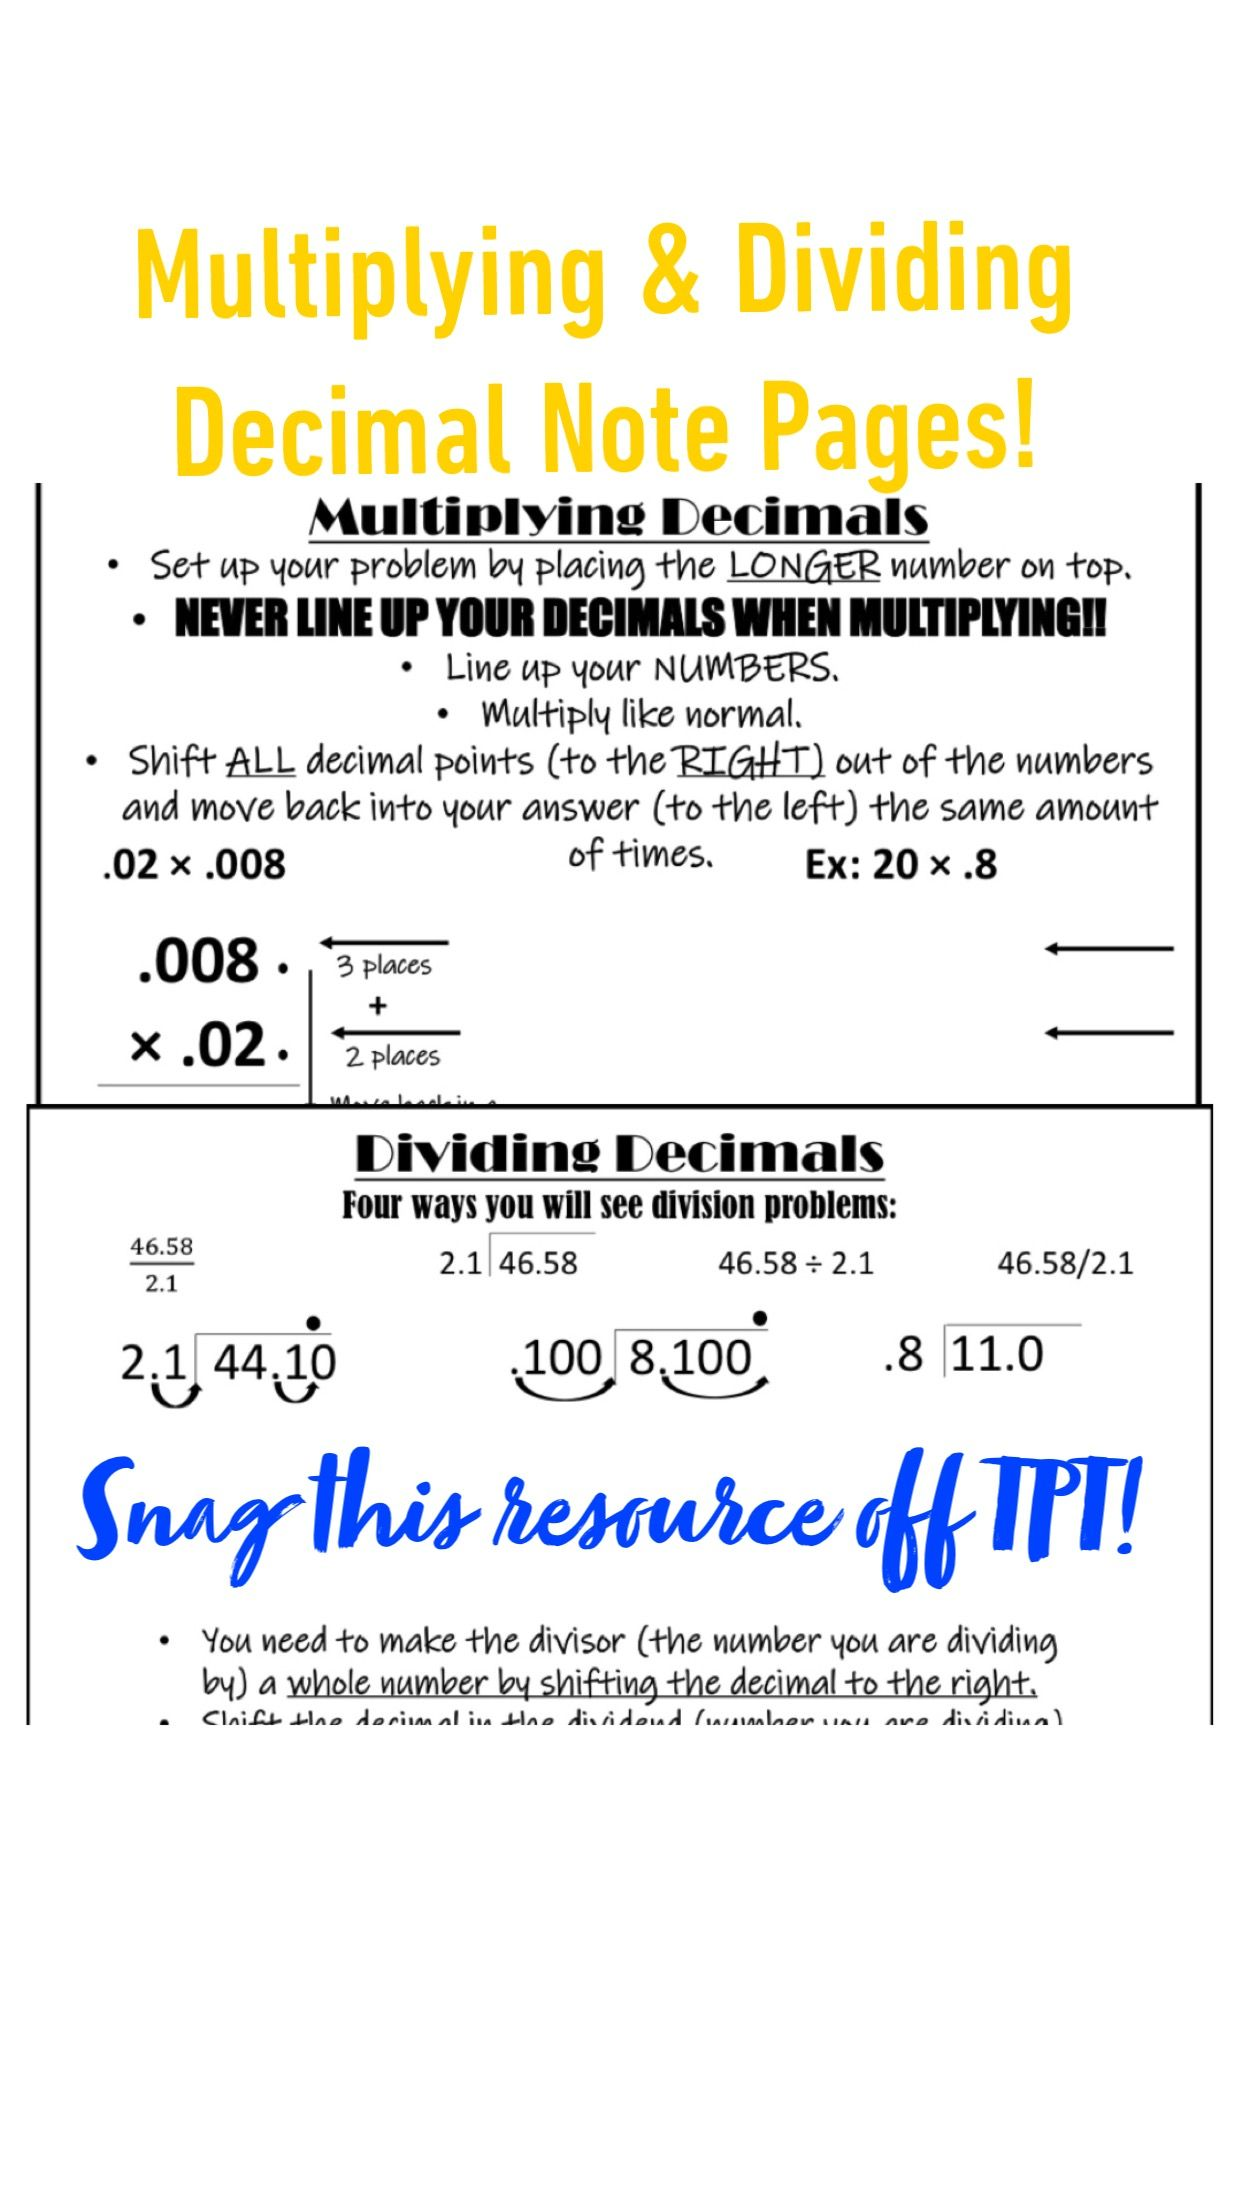 Multiplying Amp Dividing Decimals Note Pages With Examples